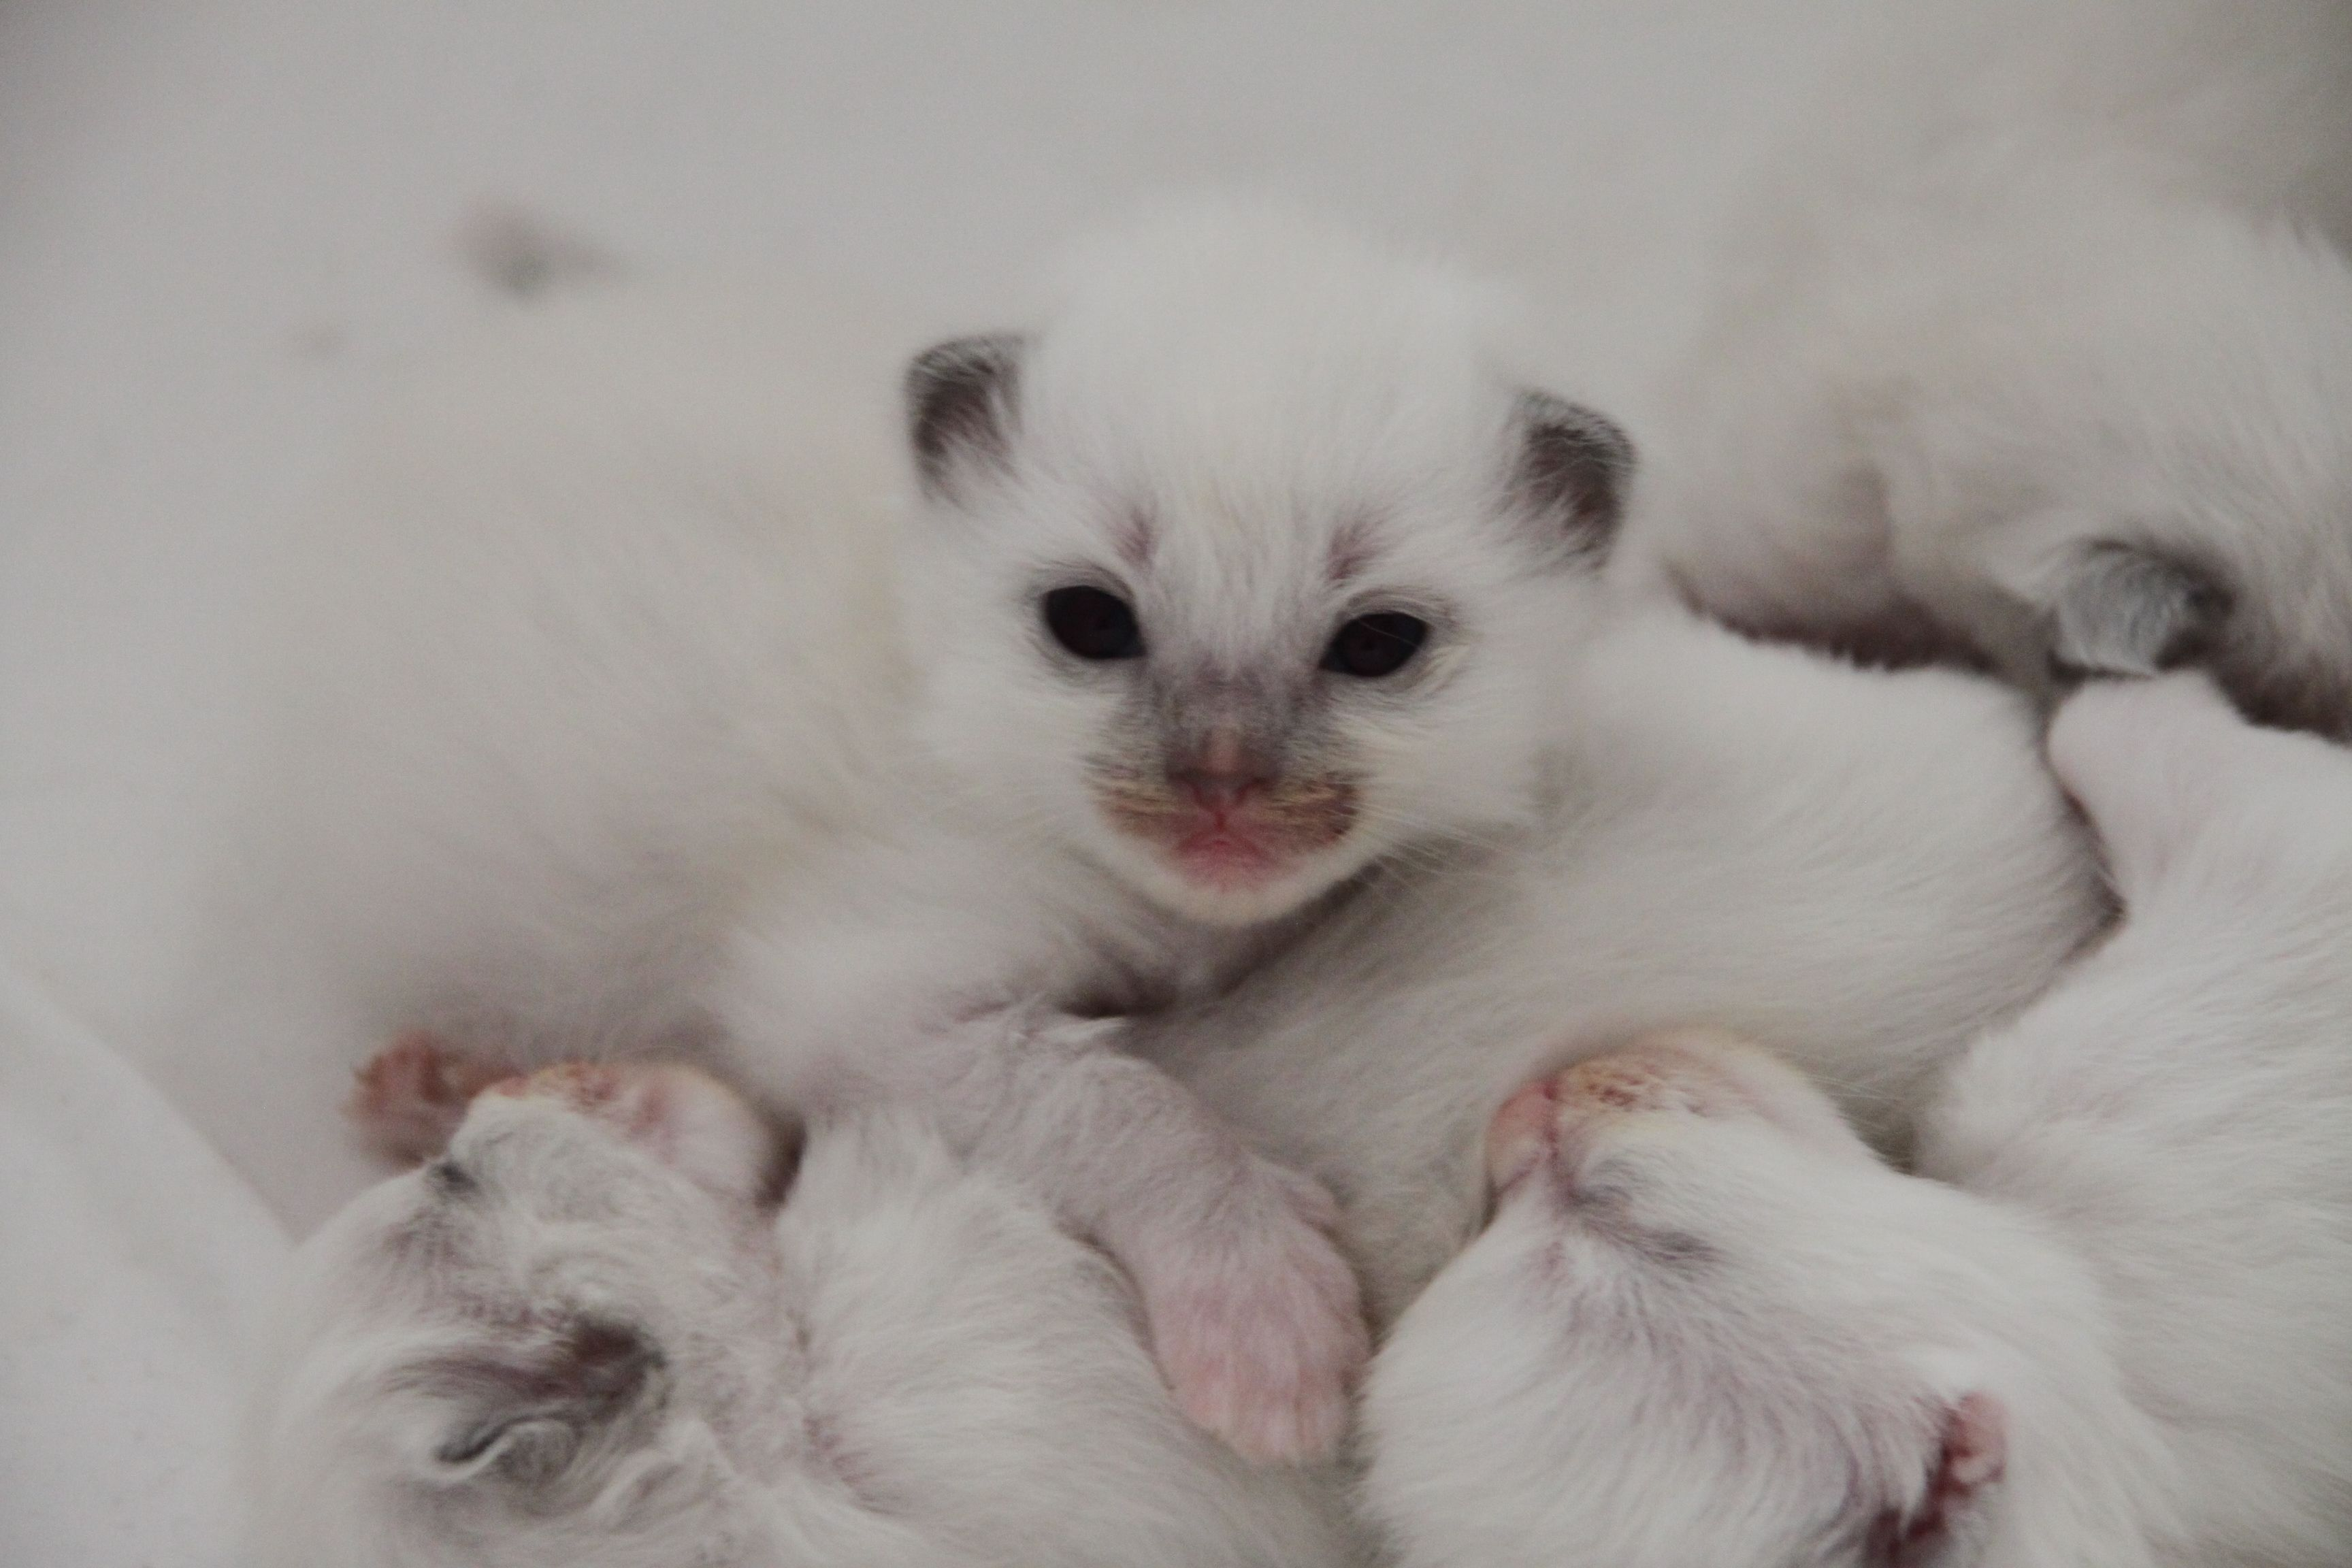 Ragdoll Kittens 2 Weeks Old 3 Www Rubysragdolls Com Ragdoll Kitten Dog Friends Cute Cats